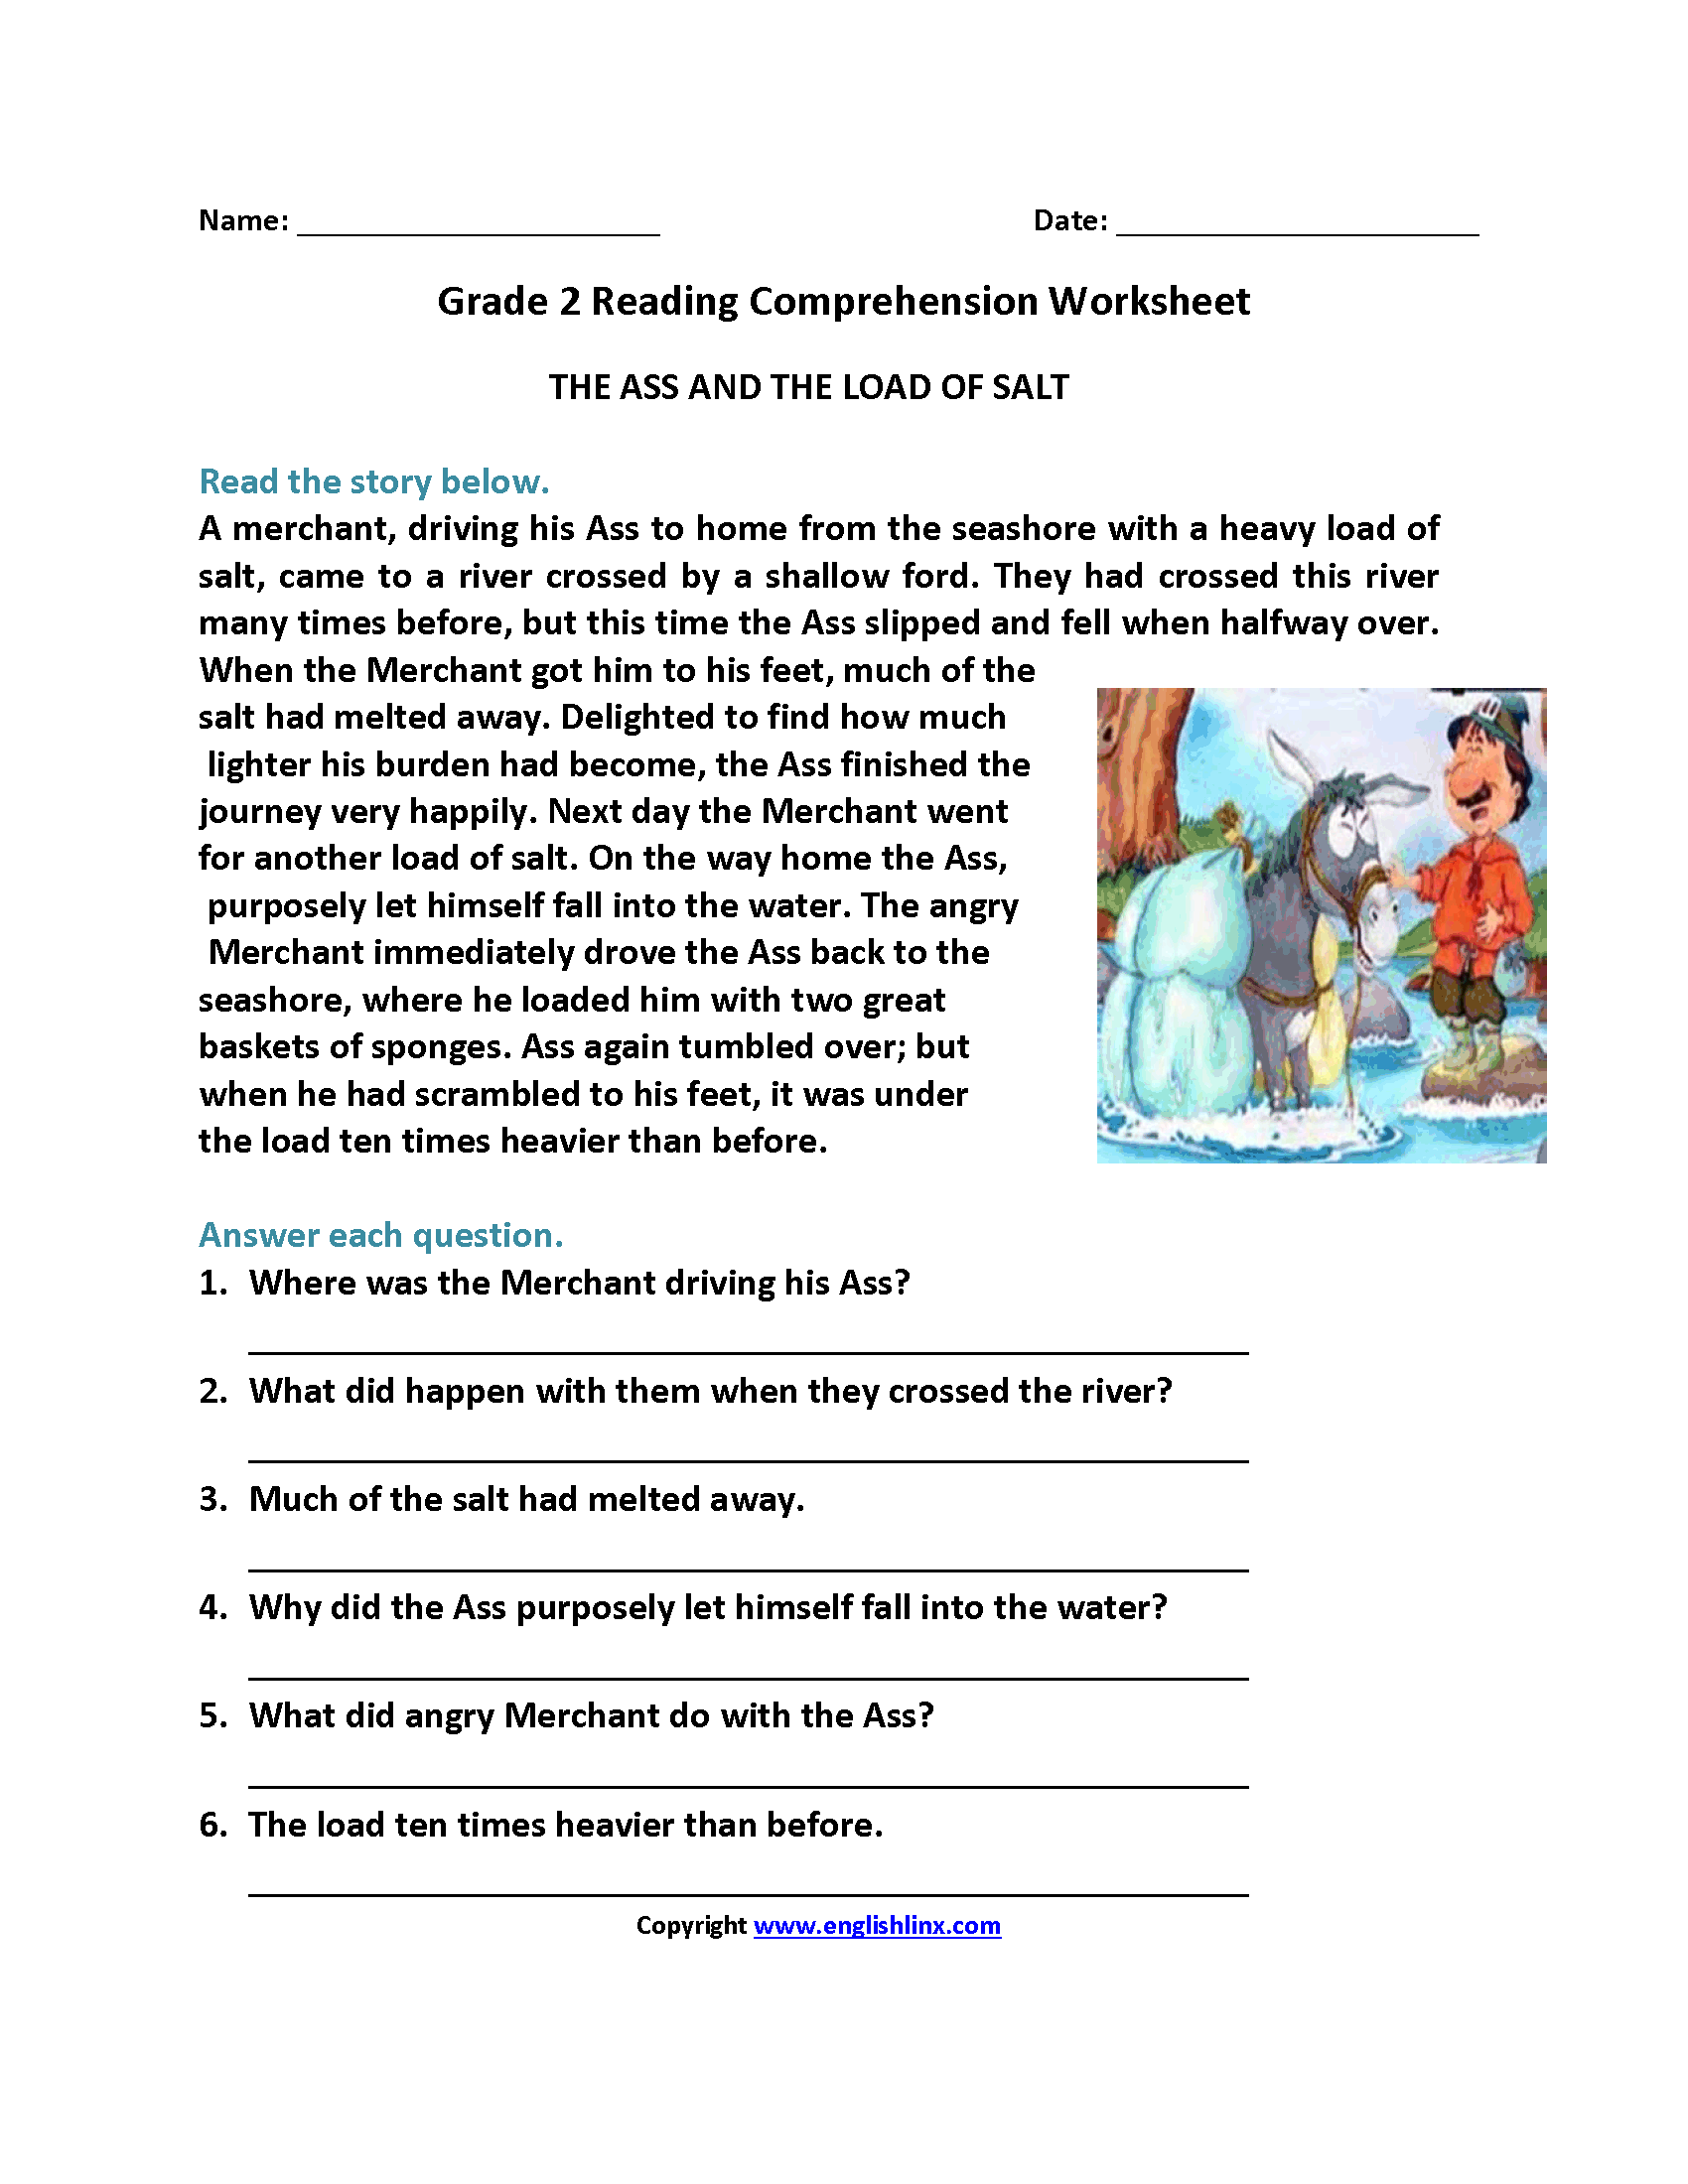 Worksheets Second Grade Reading Comprehension Printable Worksheets reading worksheets second grade worksheets